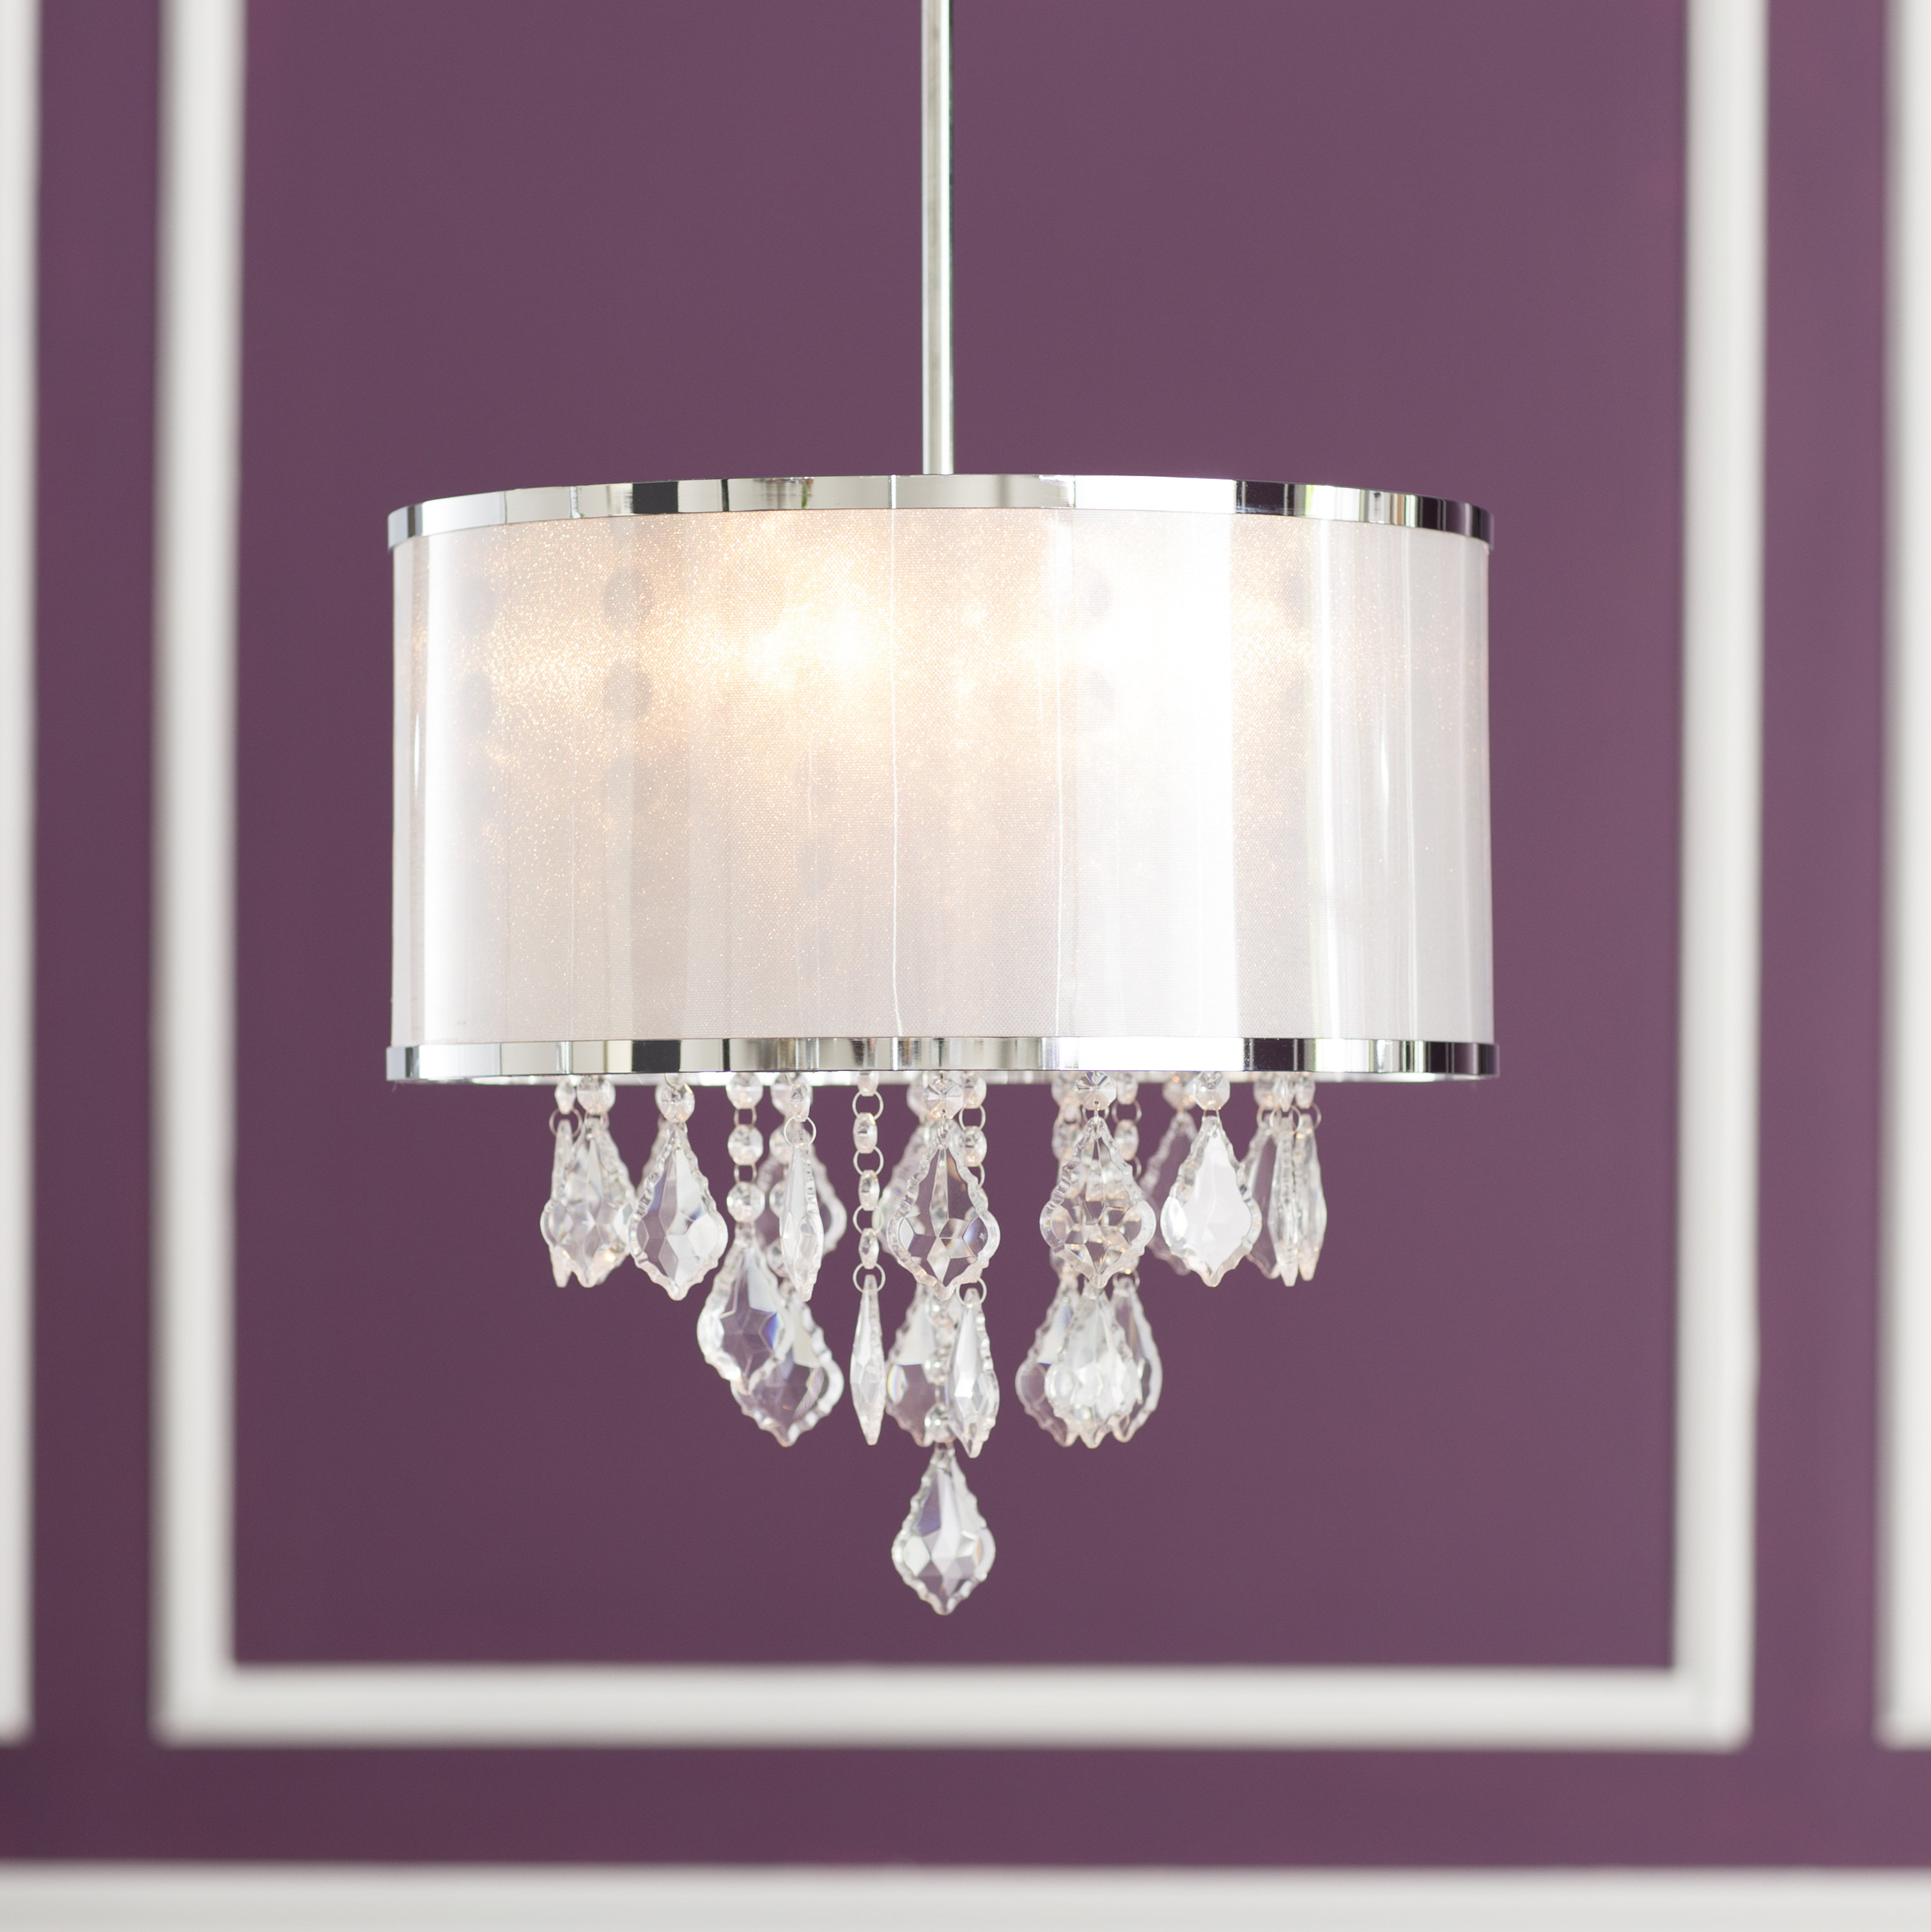 2019 Buster 5 Light Drum Chandeliers Intended For Lindsey 4 Light Drum Chandelier (Gallery 6 of 20)